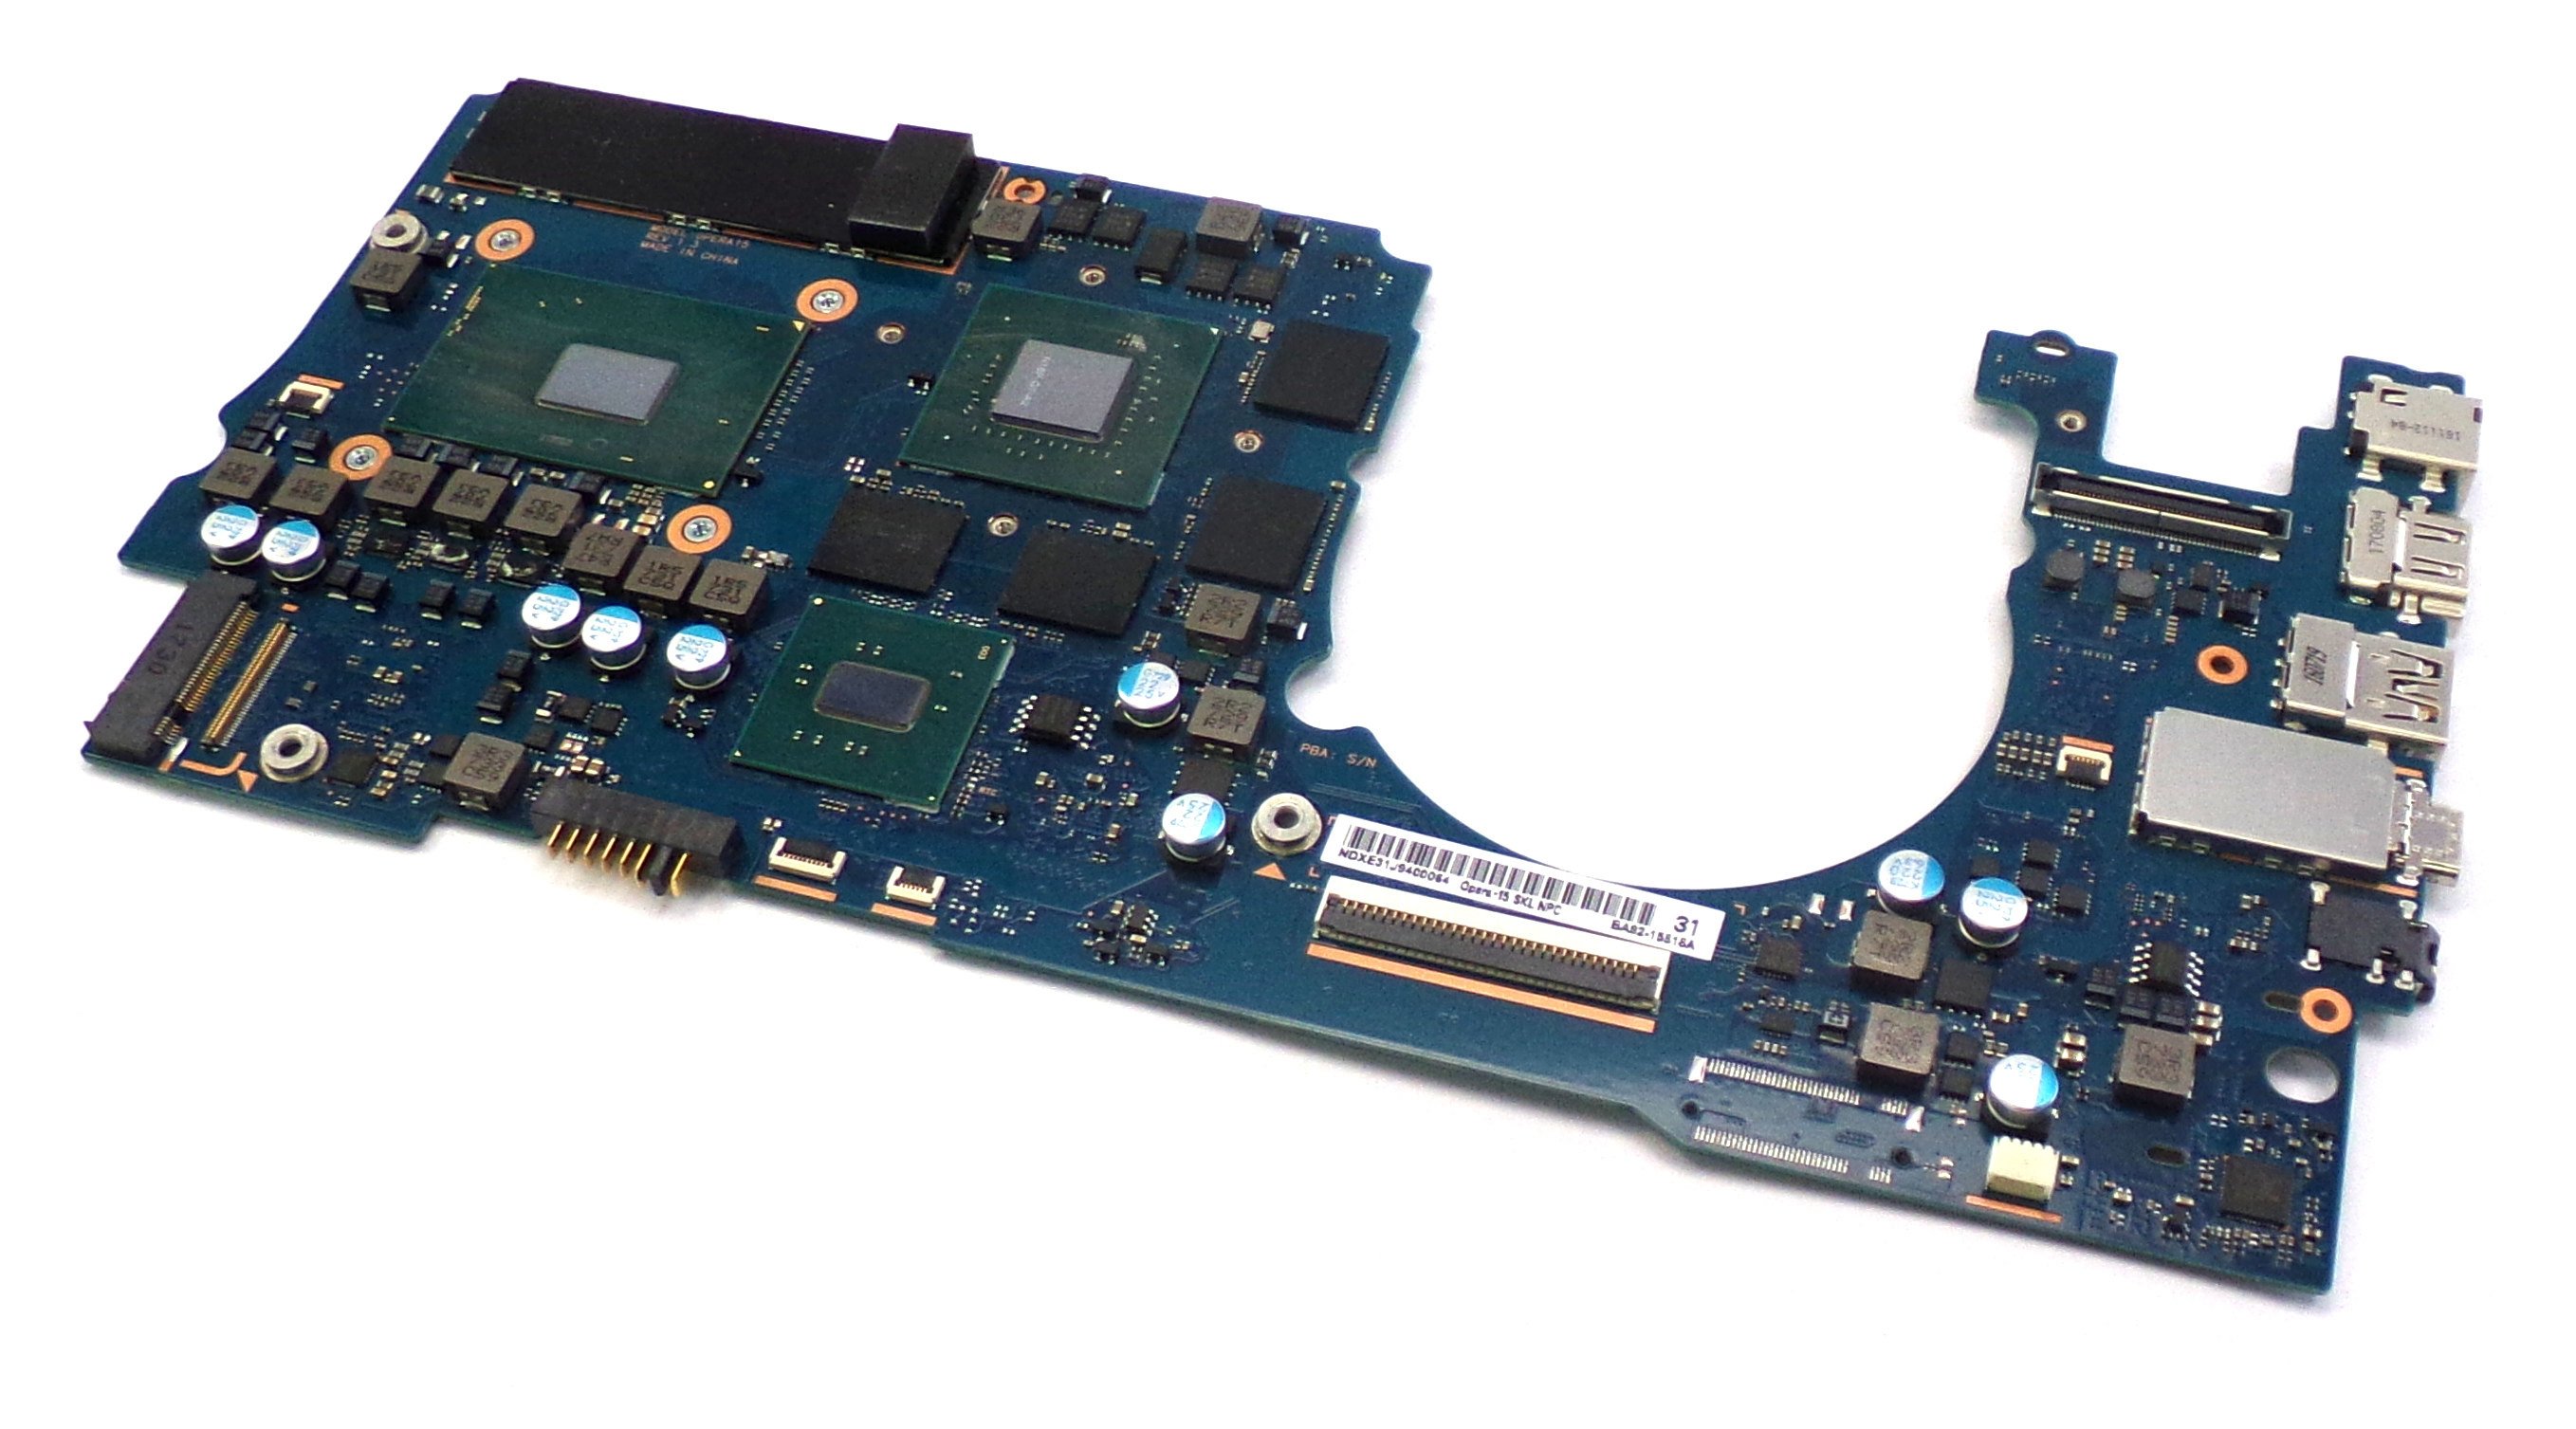 Samsung BA92-15818 NP940Z5L Laptop Motherboard with i7-6700HQ 2.6GHz CPU